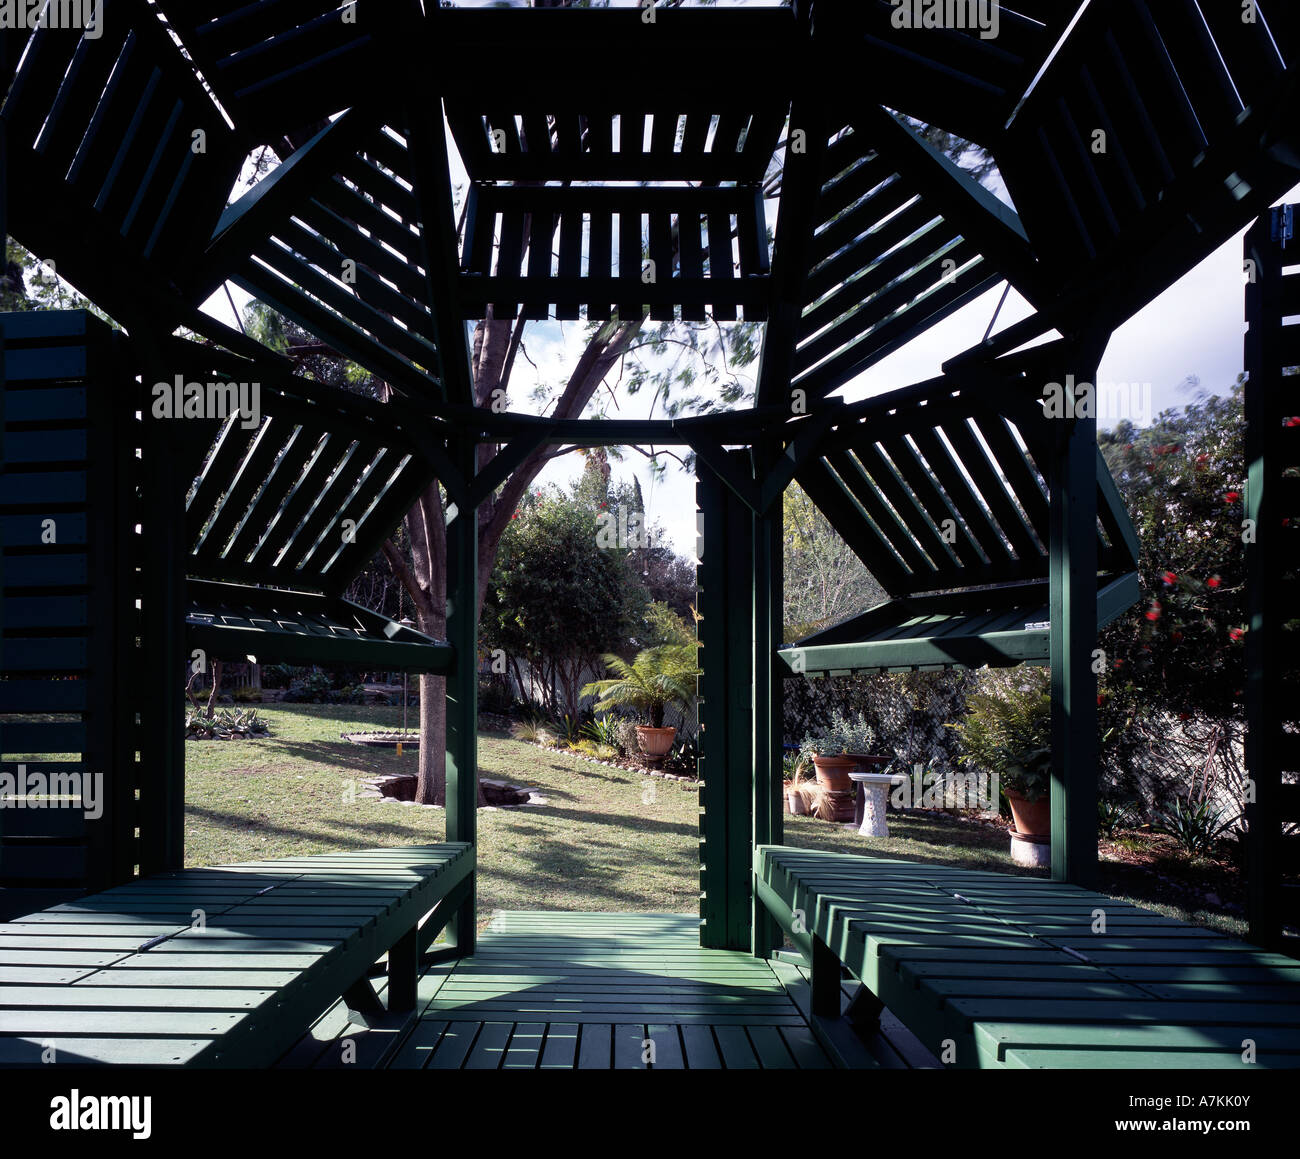 garden pool pavilion architect michael jantzen stock photo 11863610